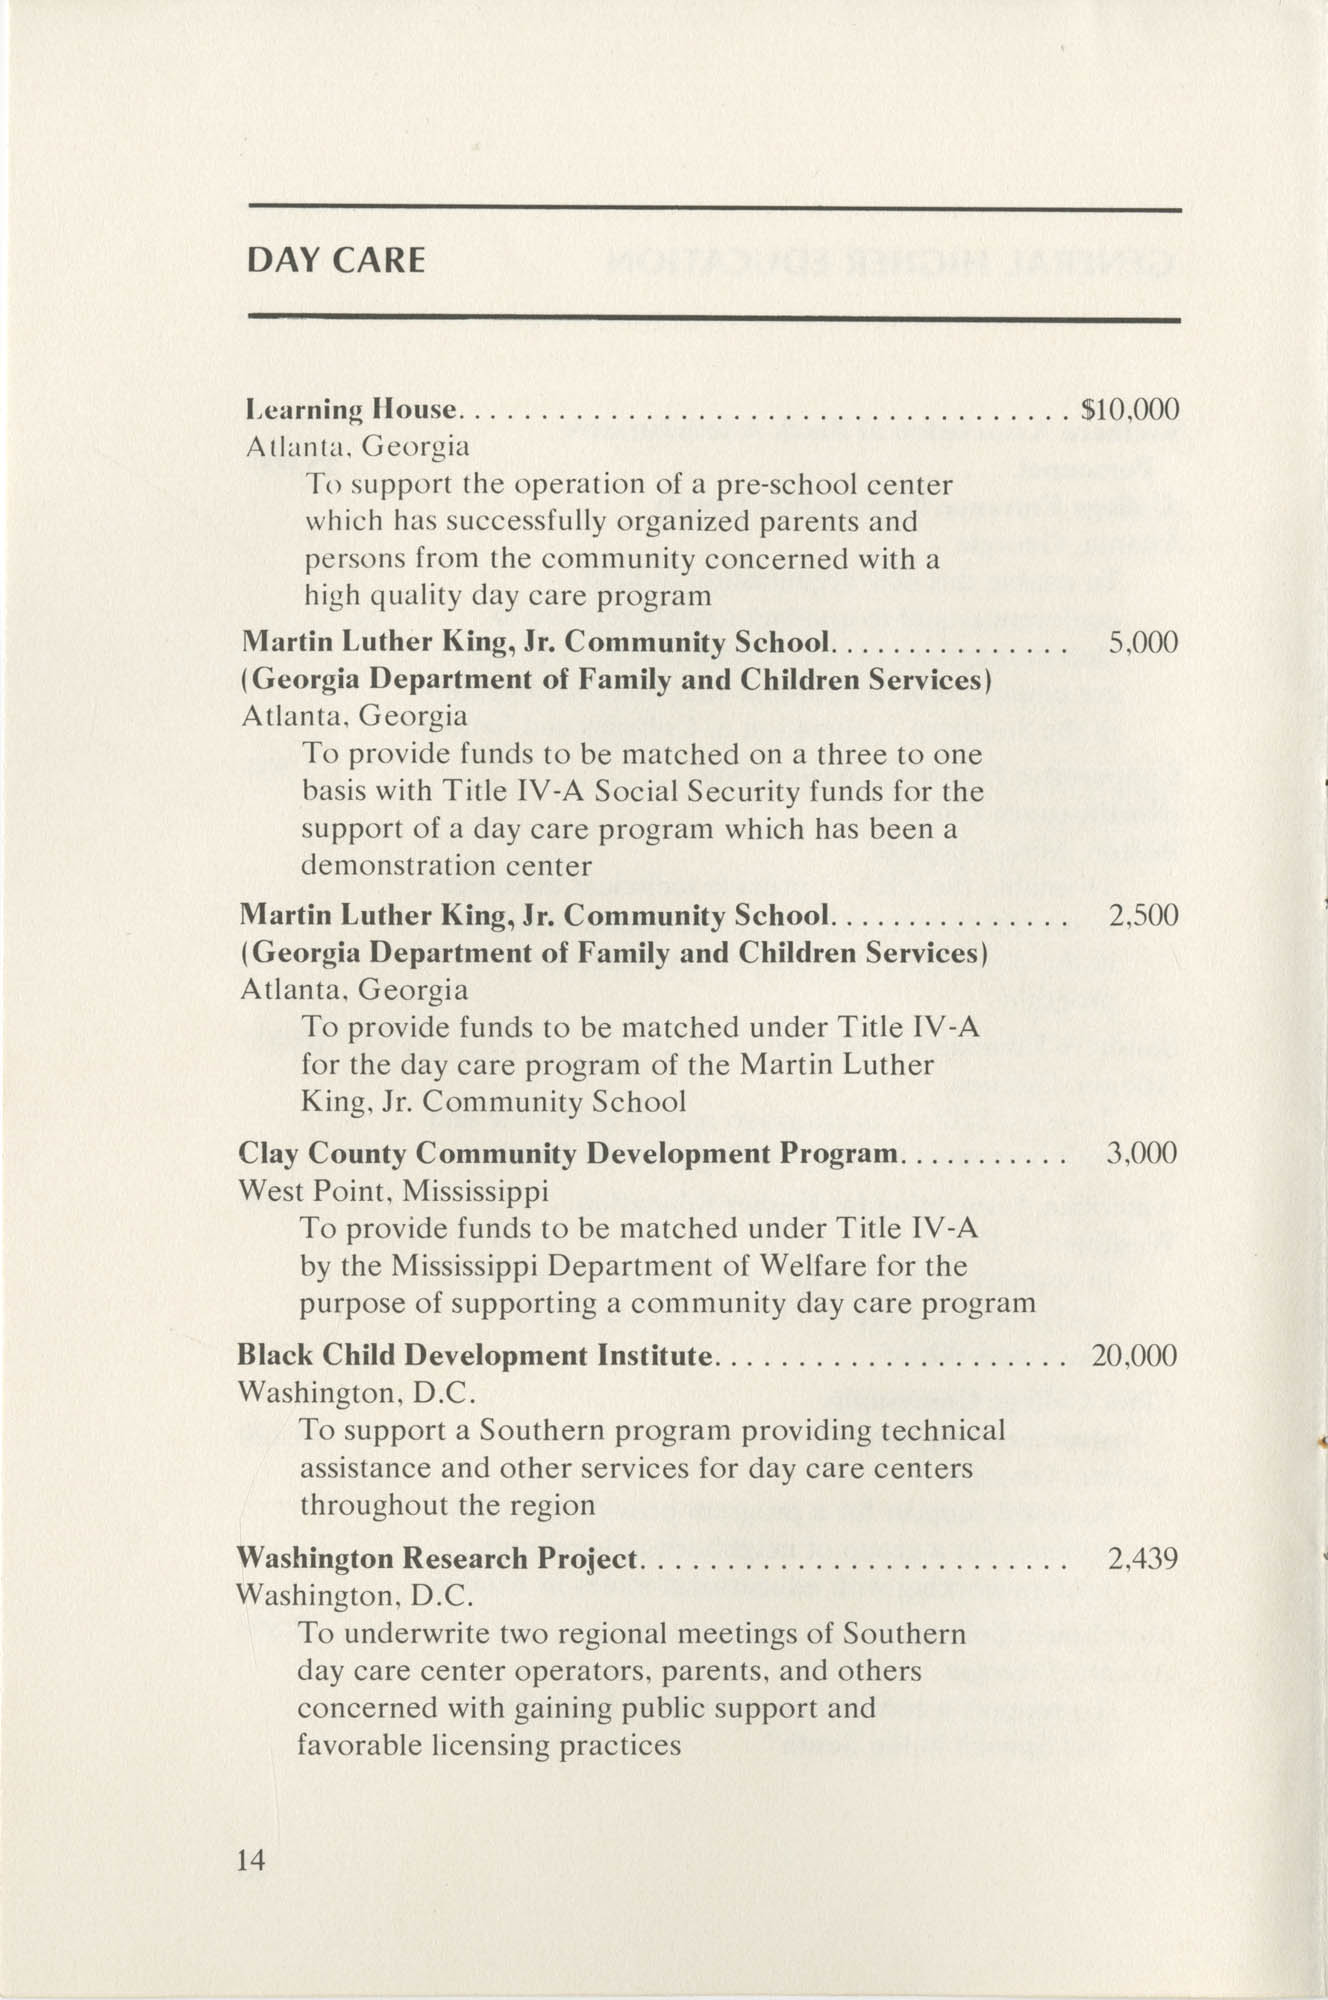 Southern Education Foundation, Annual Report 1971-1972, Page 14